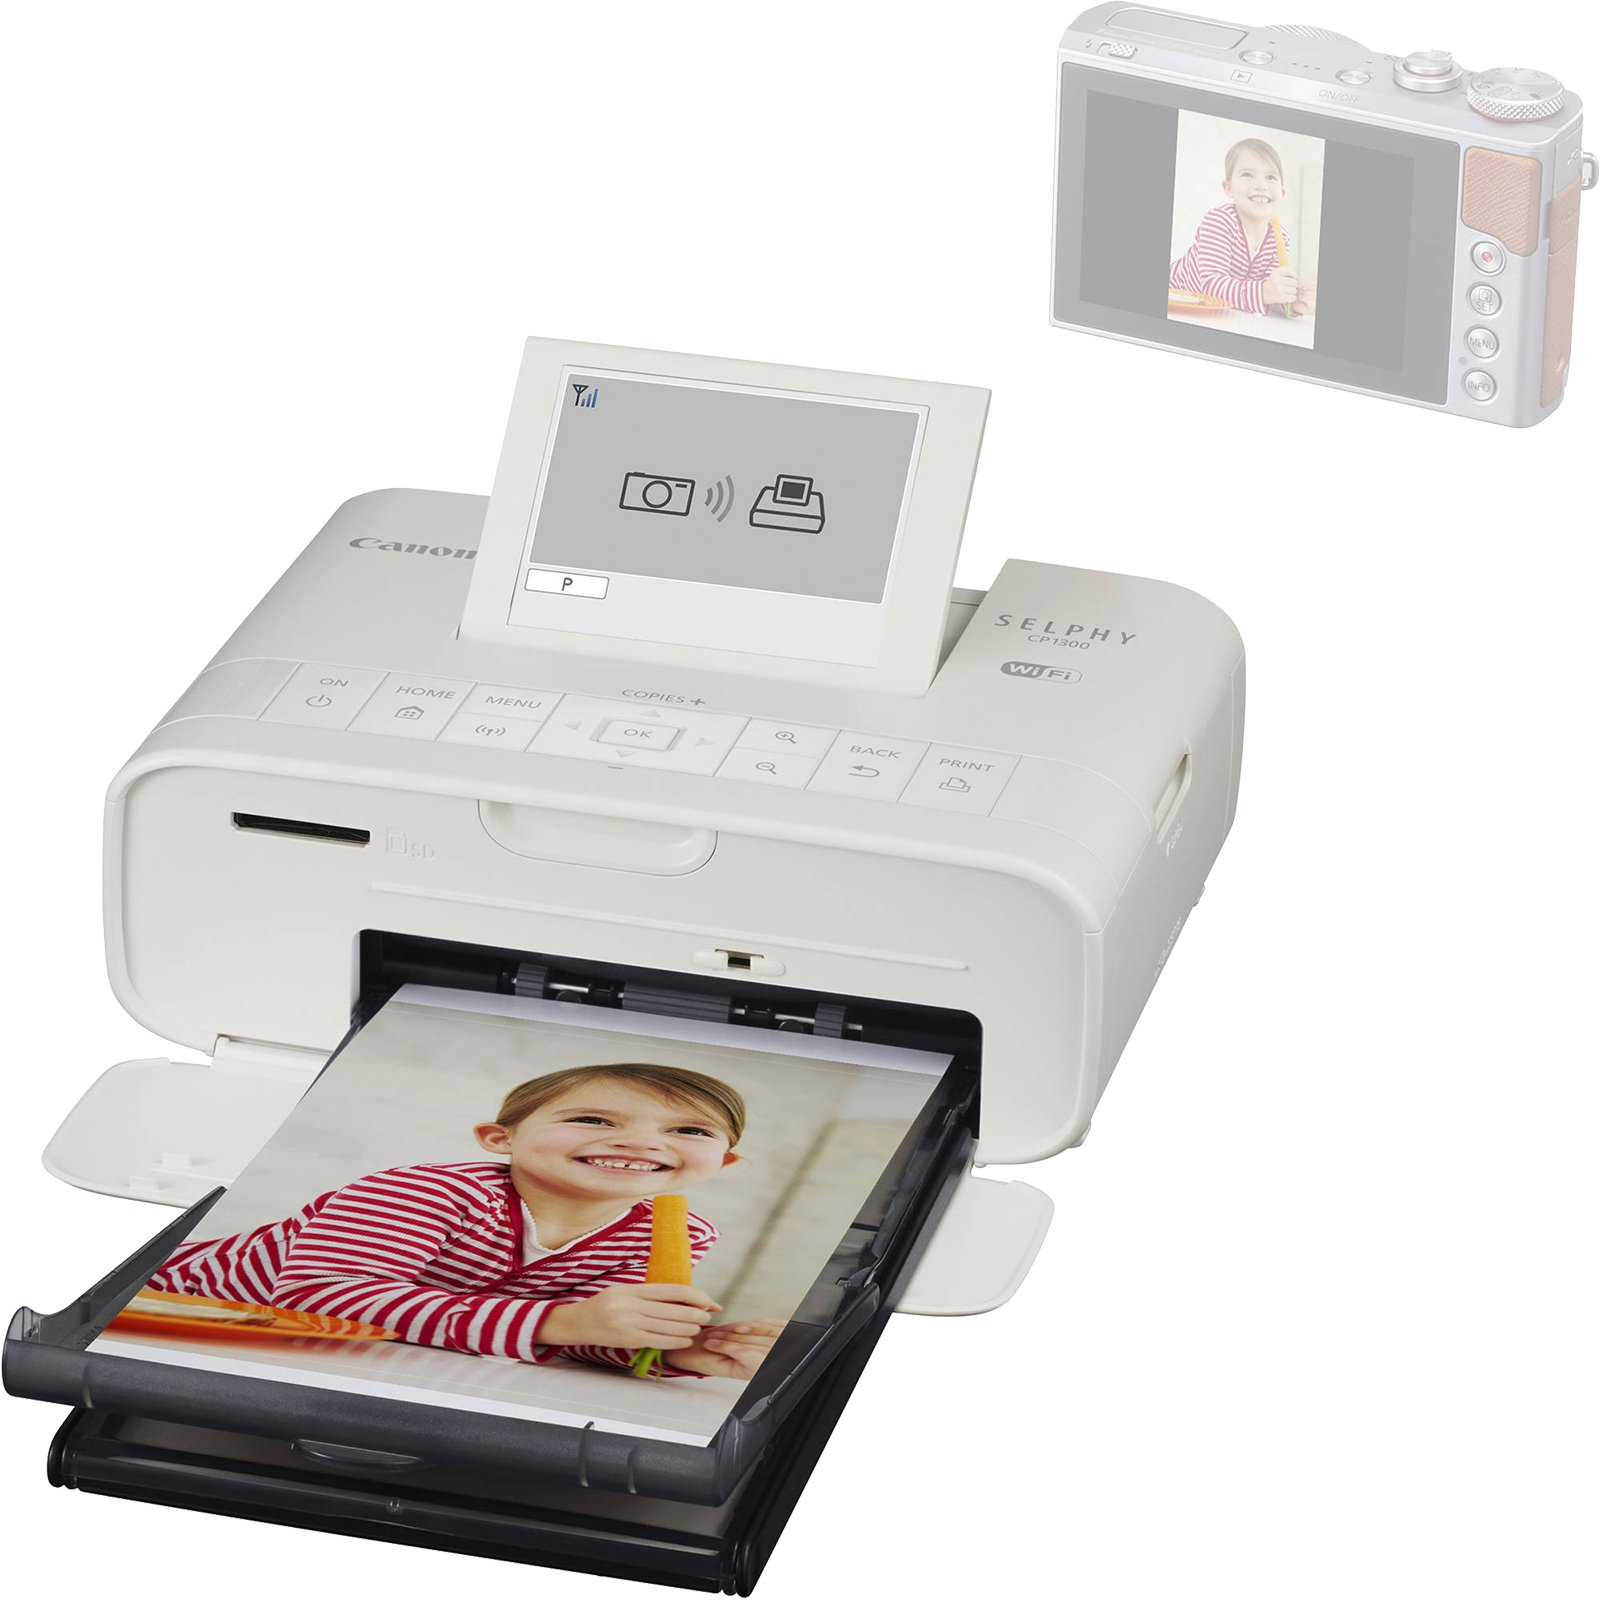 Canon SELPHY CP1300 Wi-Fi Wireless Compact Photo Printer (White) with KP-36IP Color Ink Paper Set + Power Bank + Kit by Canon (Image #3)